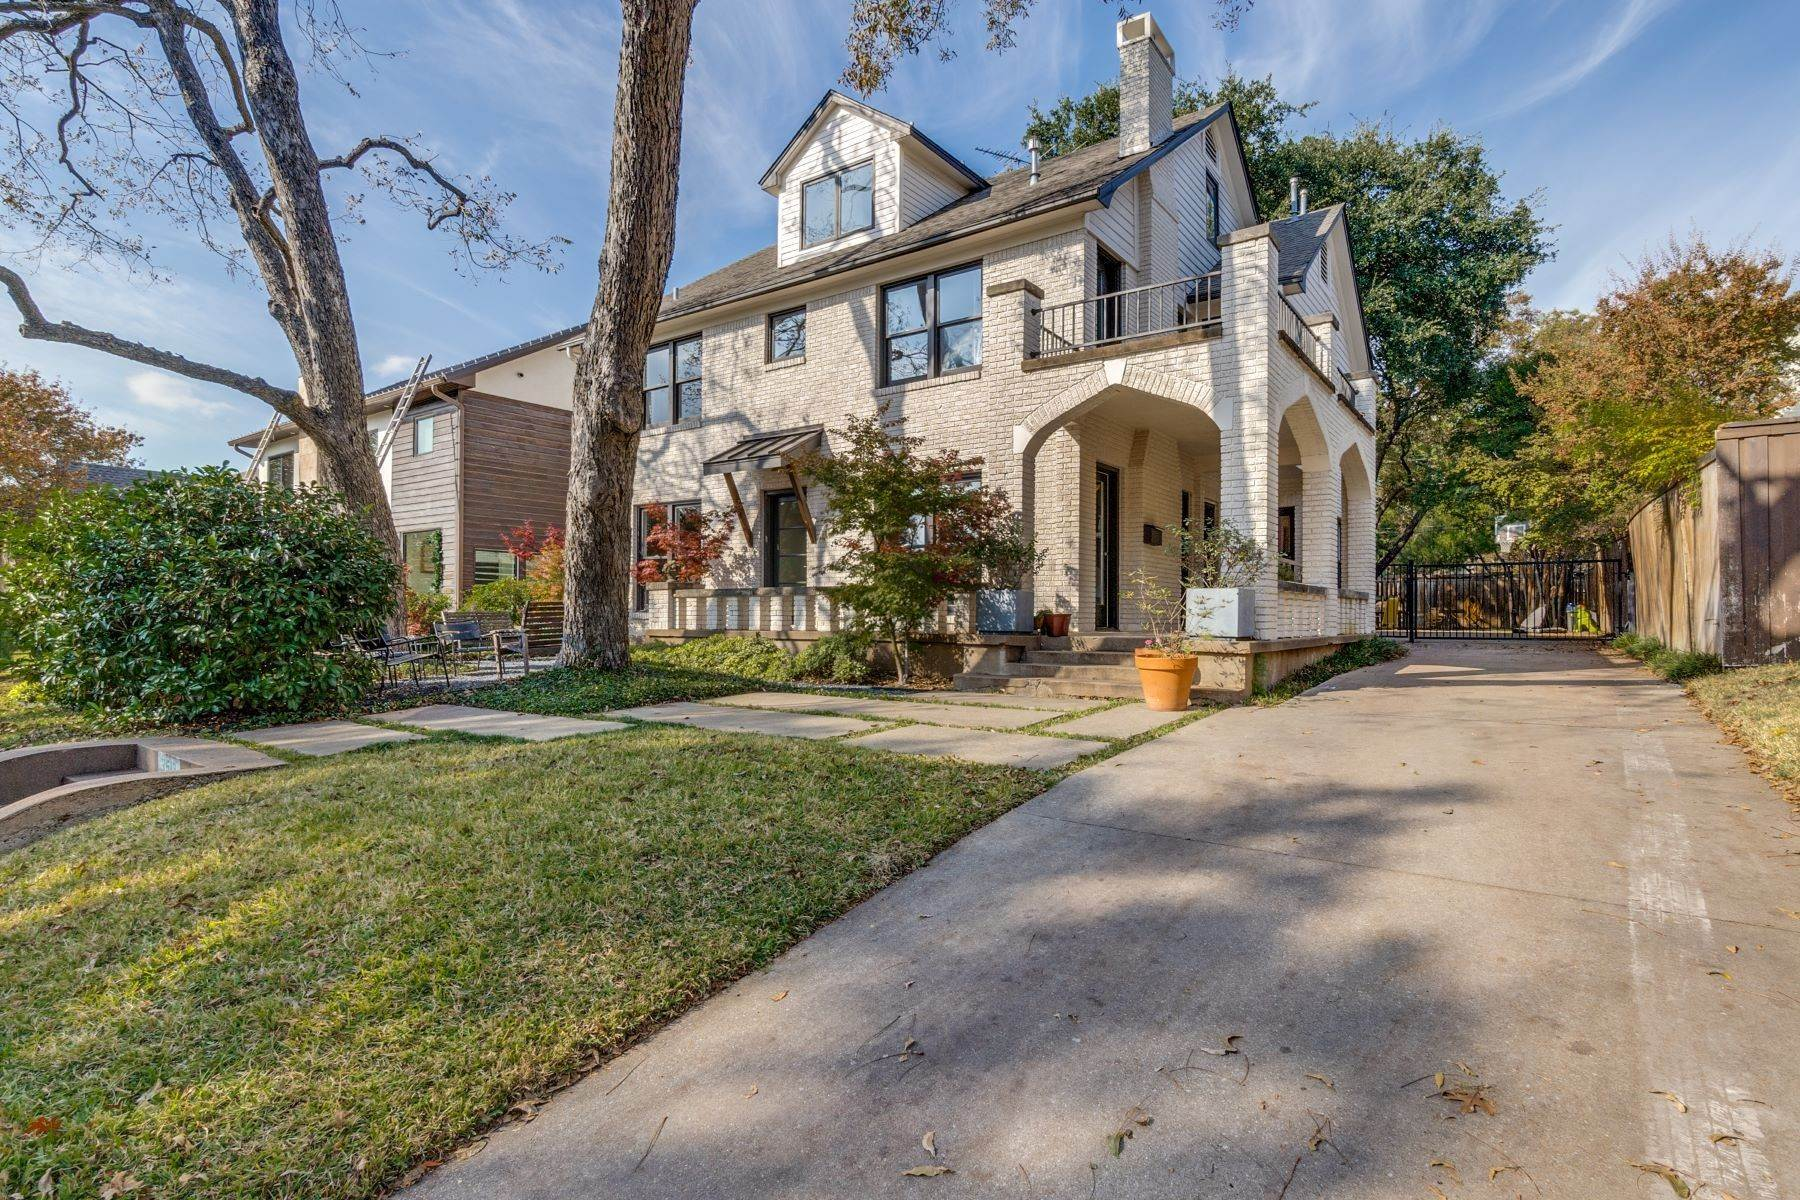 Single Family Homes for Sale at Updated Traditional with Transitional Finishes 3512 Mcfarlin Boulevard University Park, Texas 75205 United States